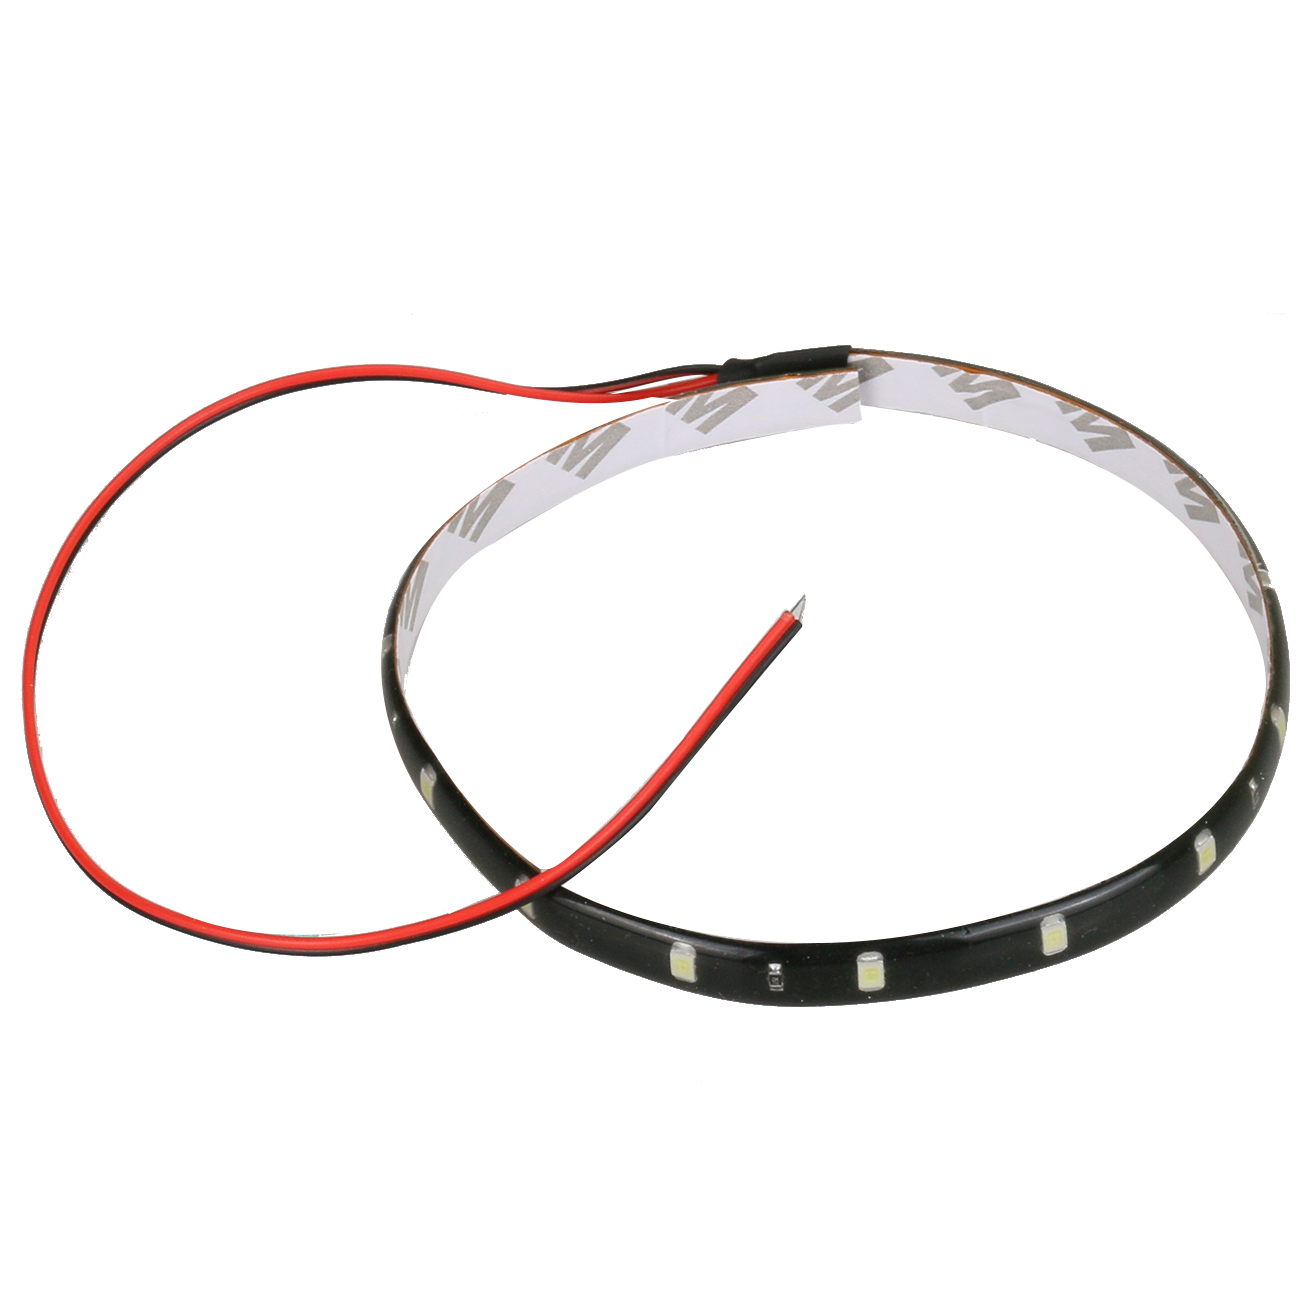 30CM Car Styling 12V 15SMD LED Auto Waterproof Flexible Light Strip for Car Motorcycle Truck Pickup Lamp